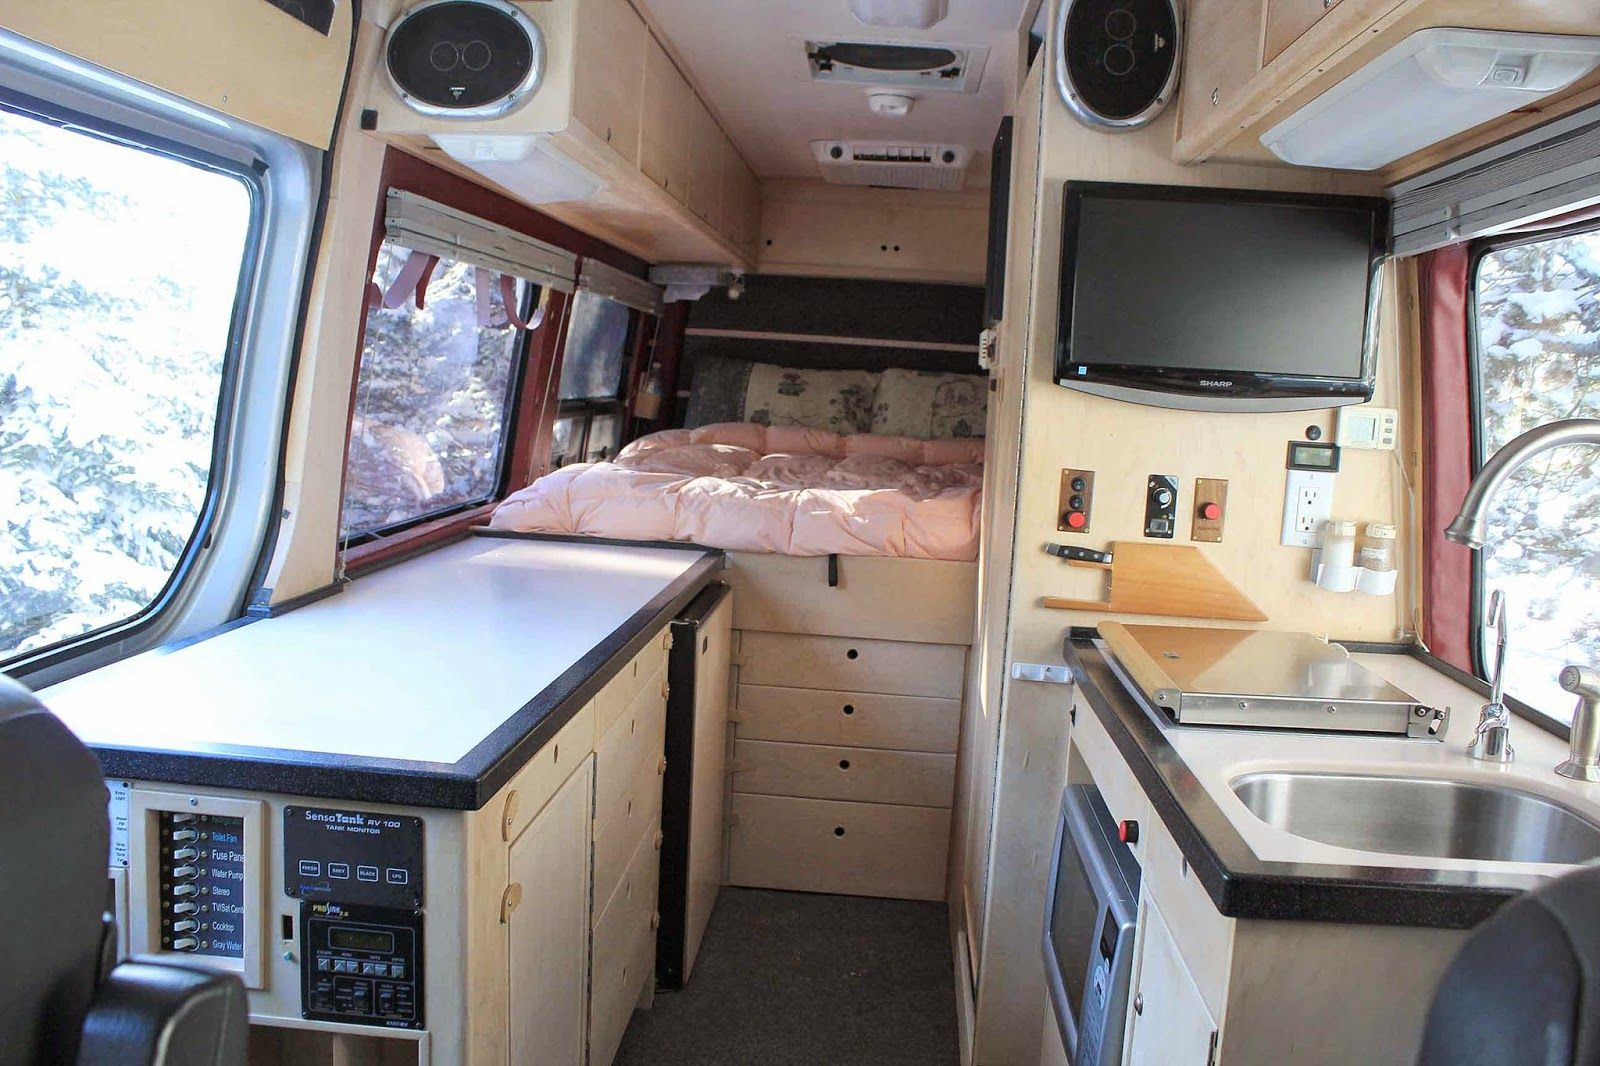 Best 25 sprinter rv ideas on pinterest van rv for Mercedes benz sprinter conversion